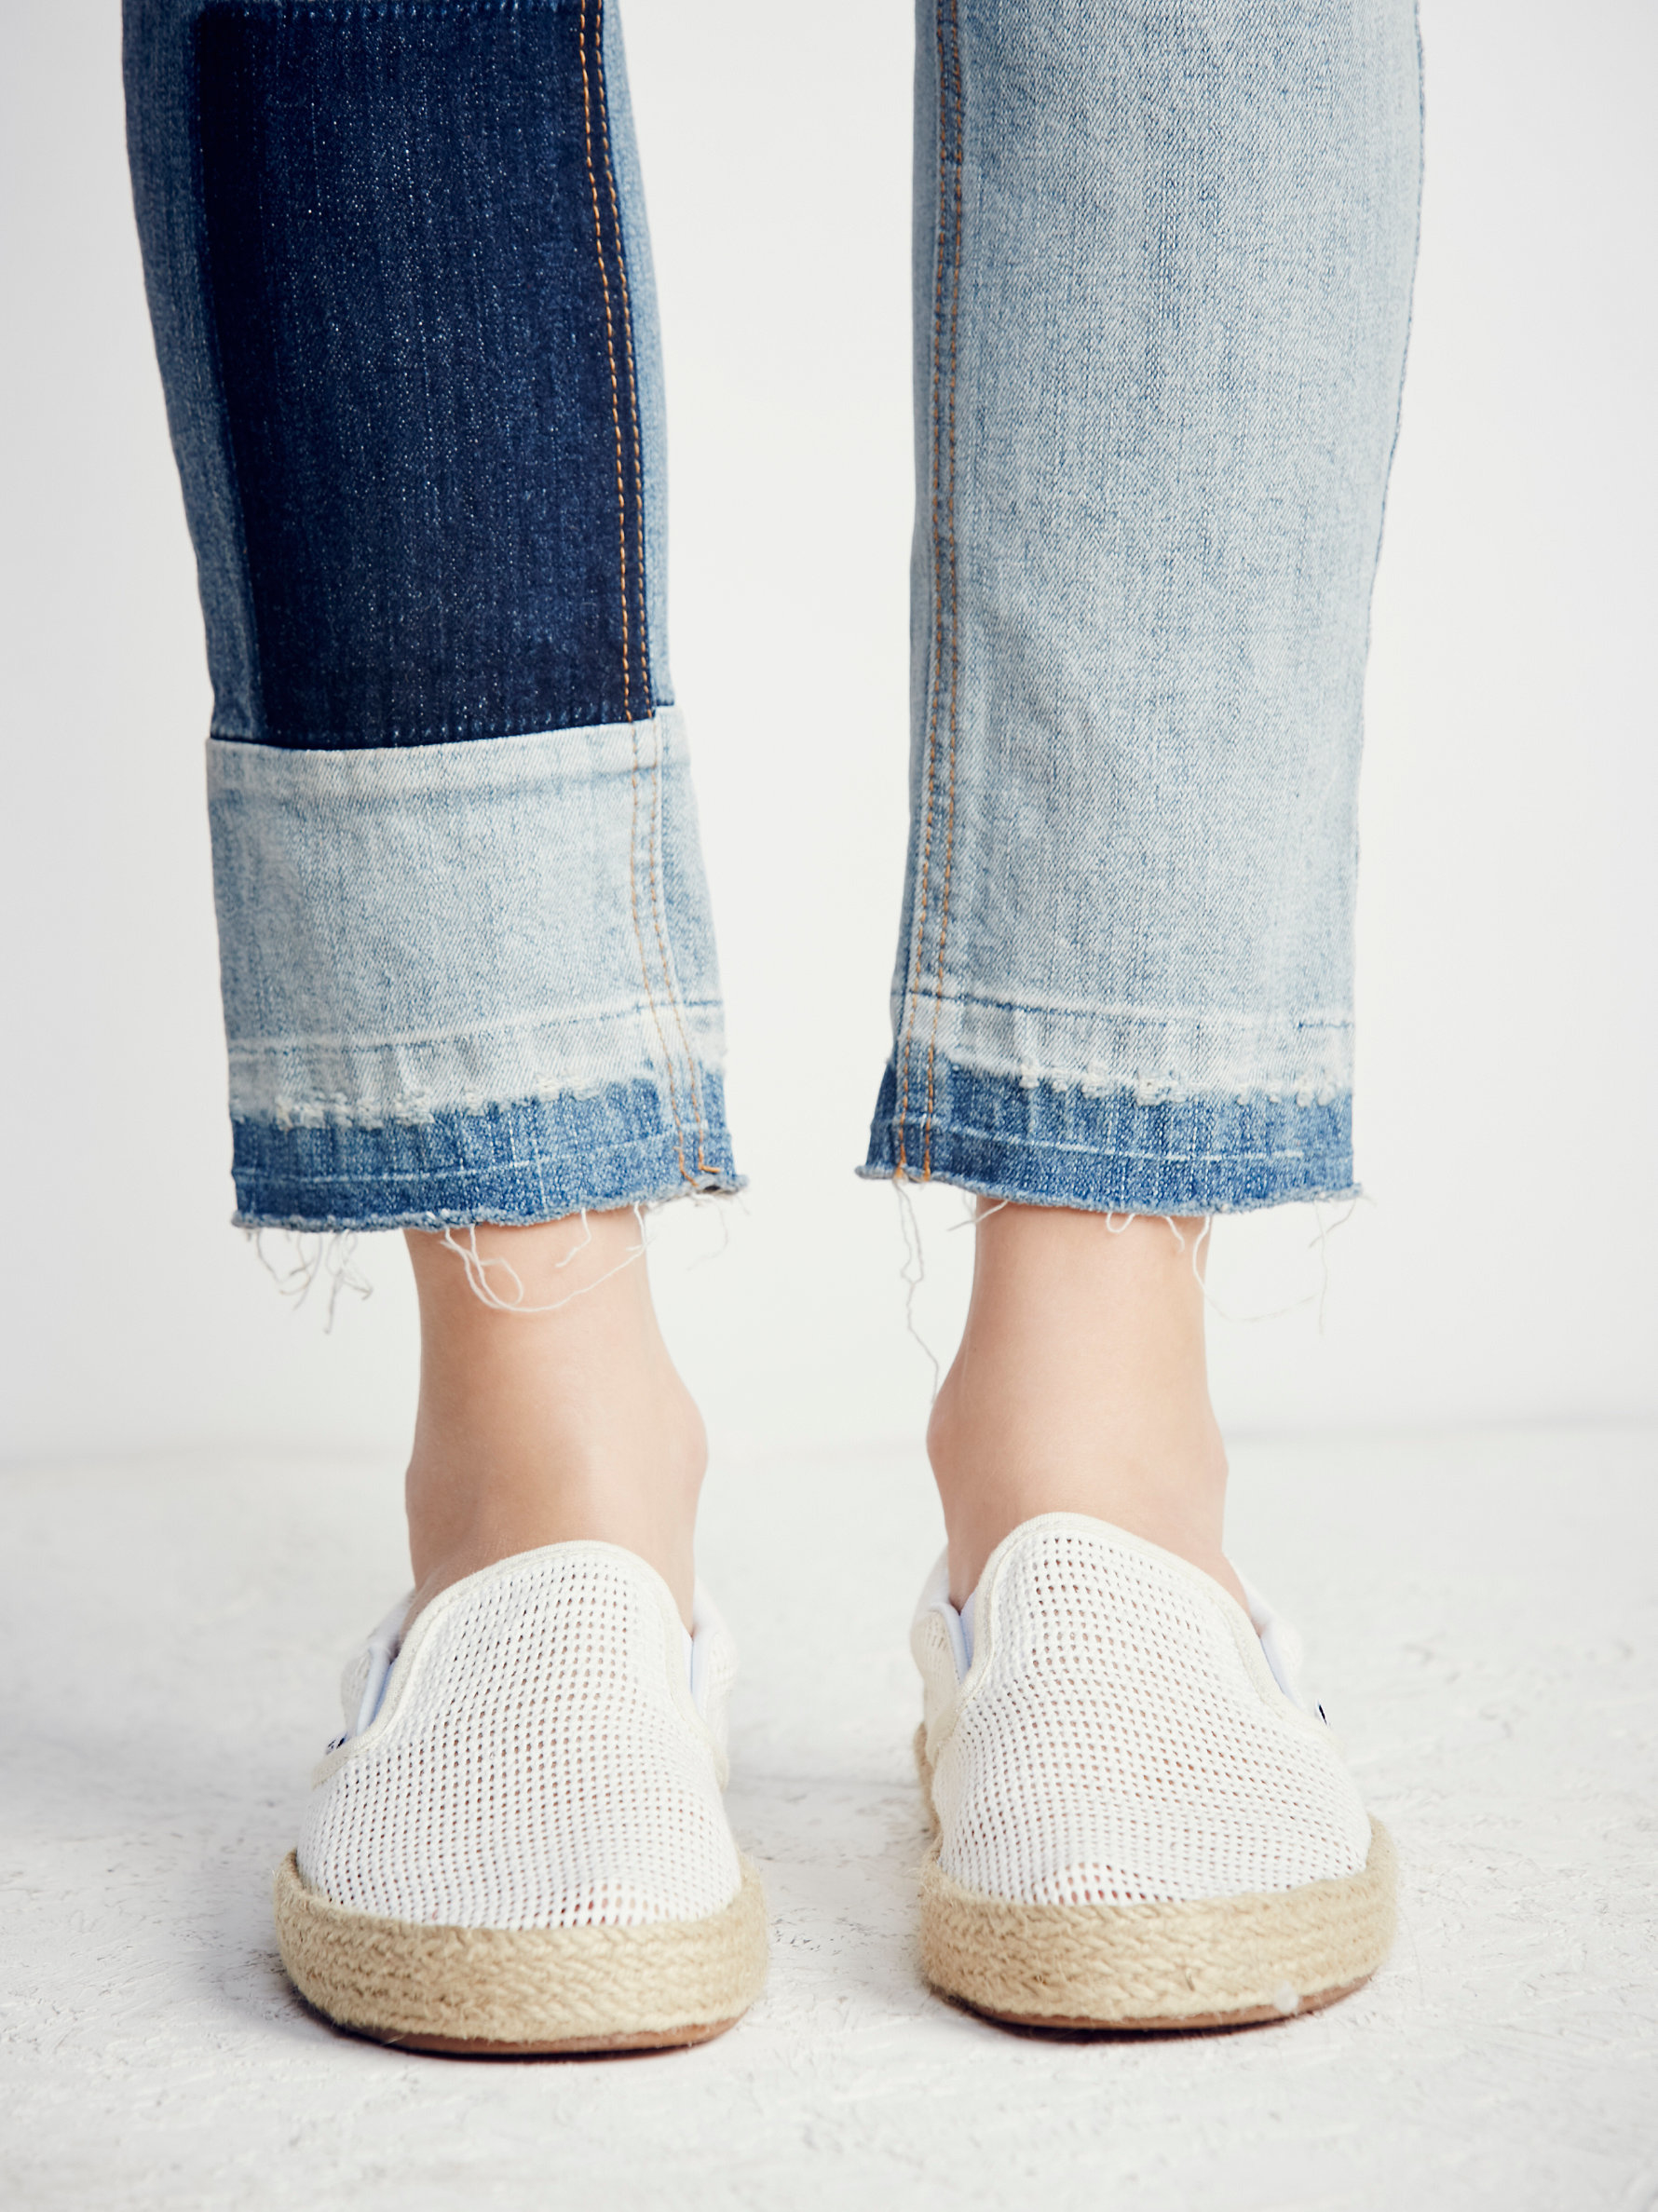 599a3d21a3b Lyst - Free People Classic Slip-on Espadrille Sneaker in Natural